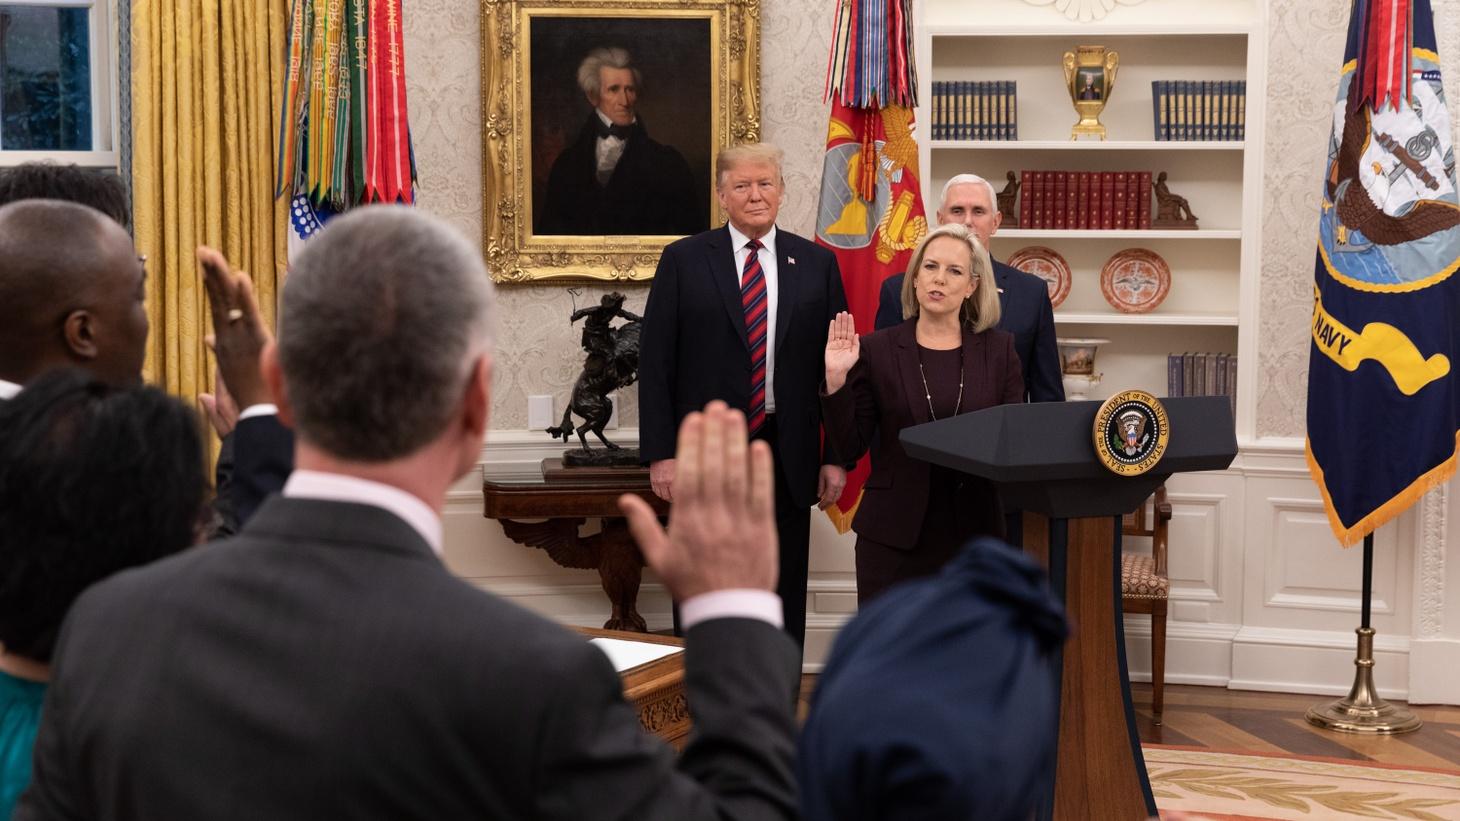 President Donald J. Trump, joined by Vice President Mike Pence, watches as Department of Homeland Security Secretary Kirstjen Nielsen swears in naturalization candidates on January 19, 2019, in the Oval Office.